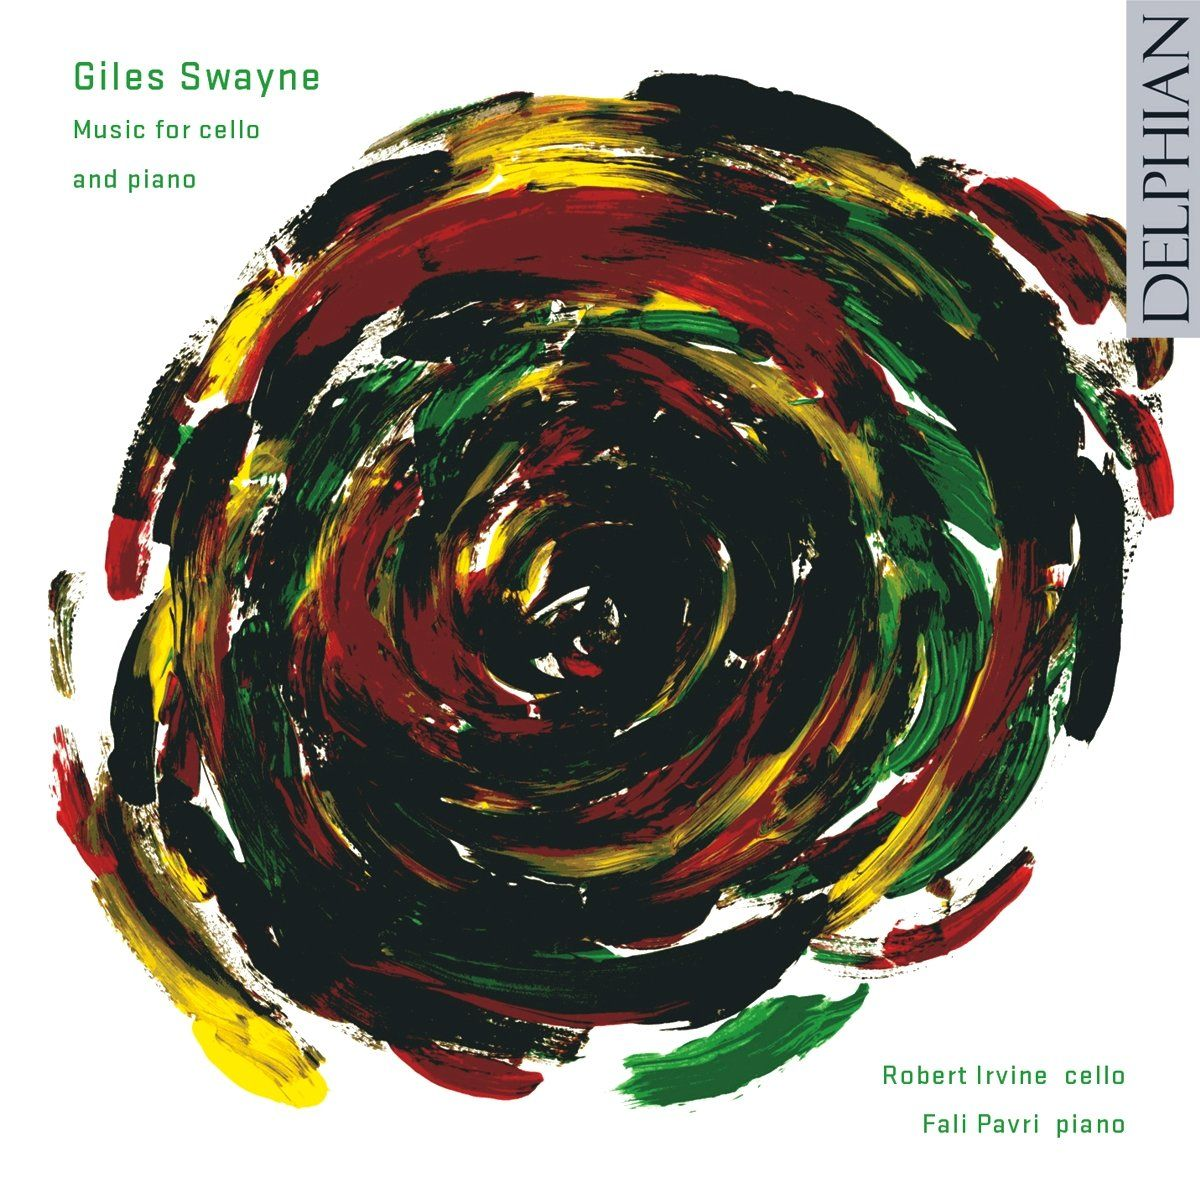 Giles Swayne: Music for cello and piano CD Delphian Records